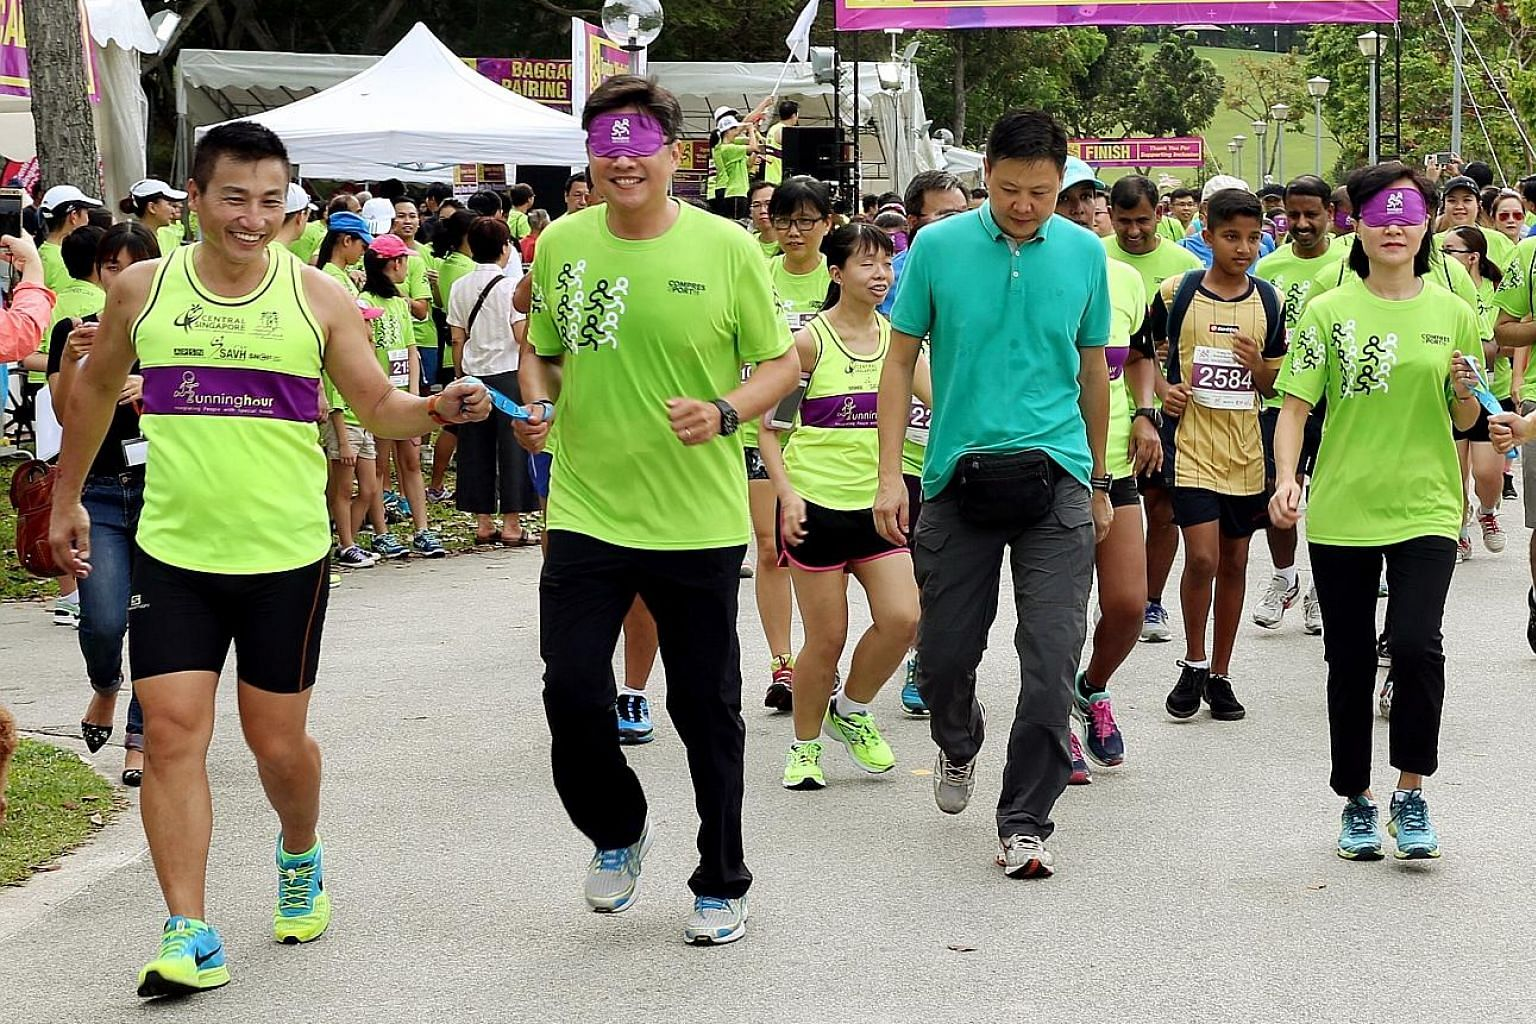 Minister for Education (Schools) Ng Chee Meng running blindfolded at yesterday's Runninghour in Bedok Reservoir, guided by group founder John See Toh. Mr Ng and his wife Michelle (right) ran for 1km.